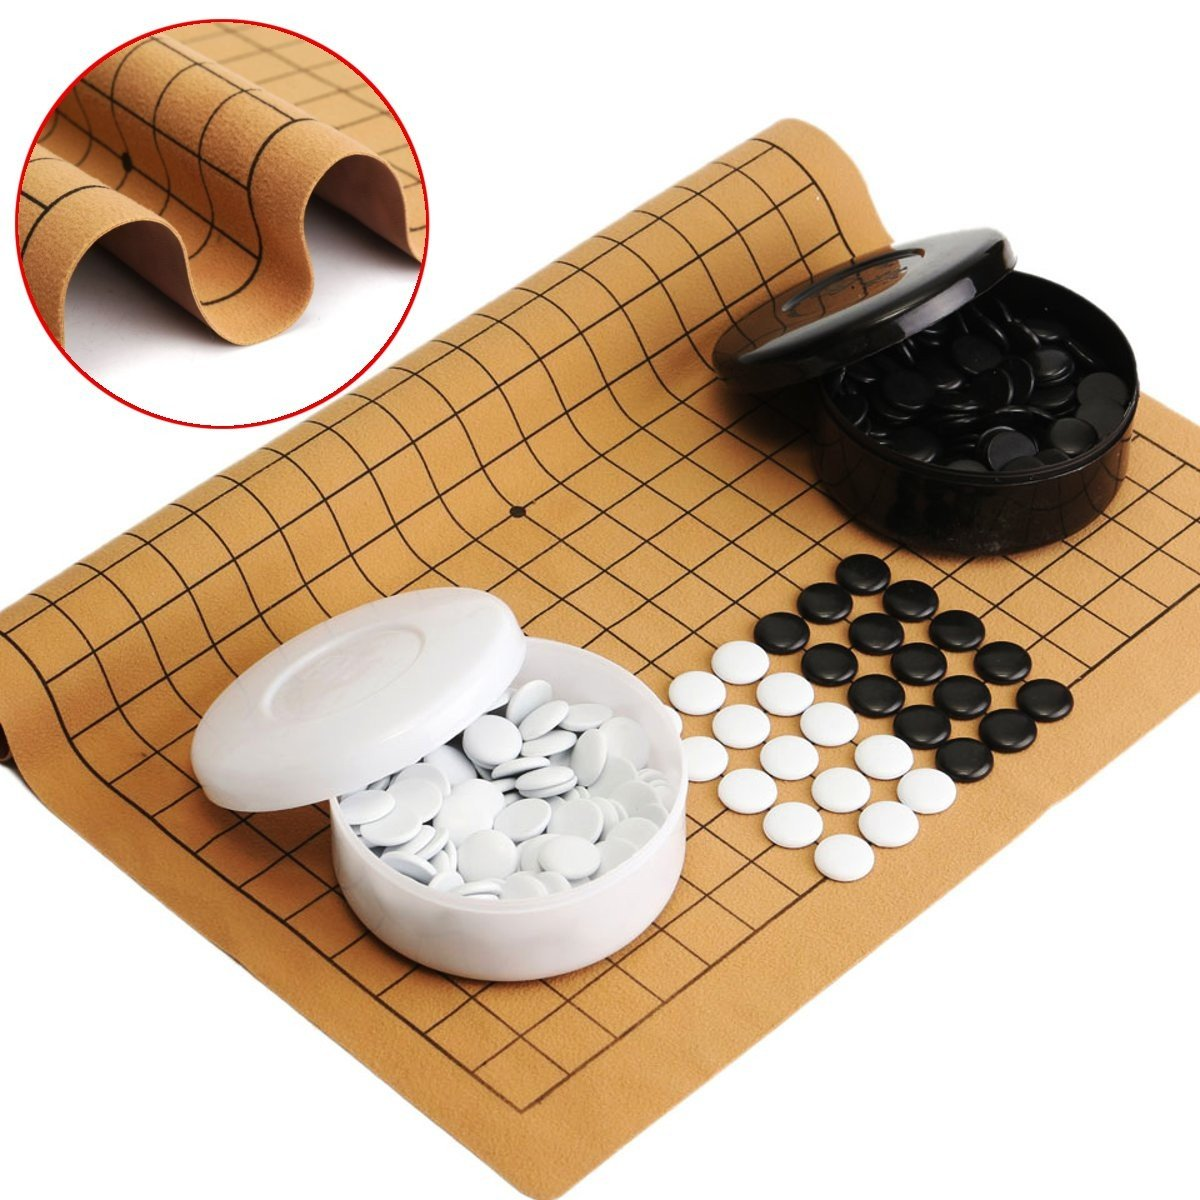 Wanrane 361PCS Weiqi Professional Toy,Go Game Suede Leather Sheet Chinese Play Fun Educational Toys